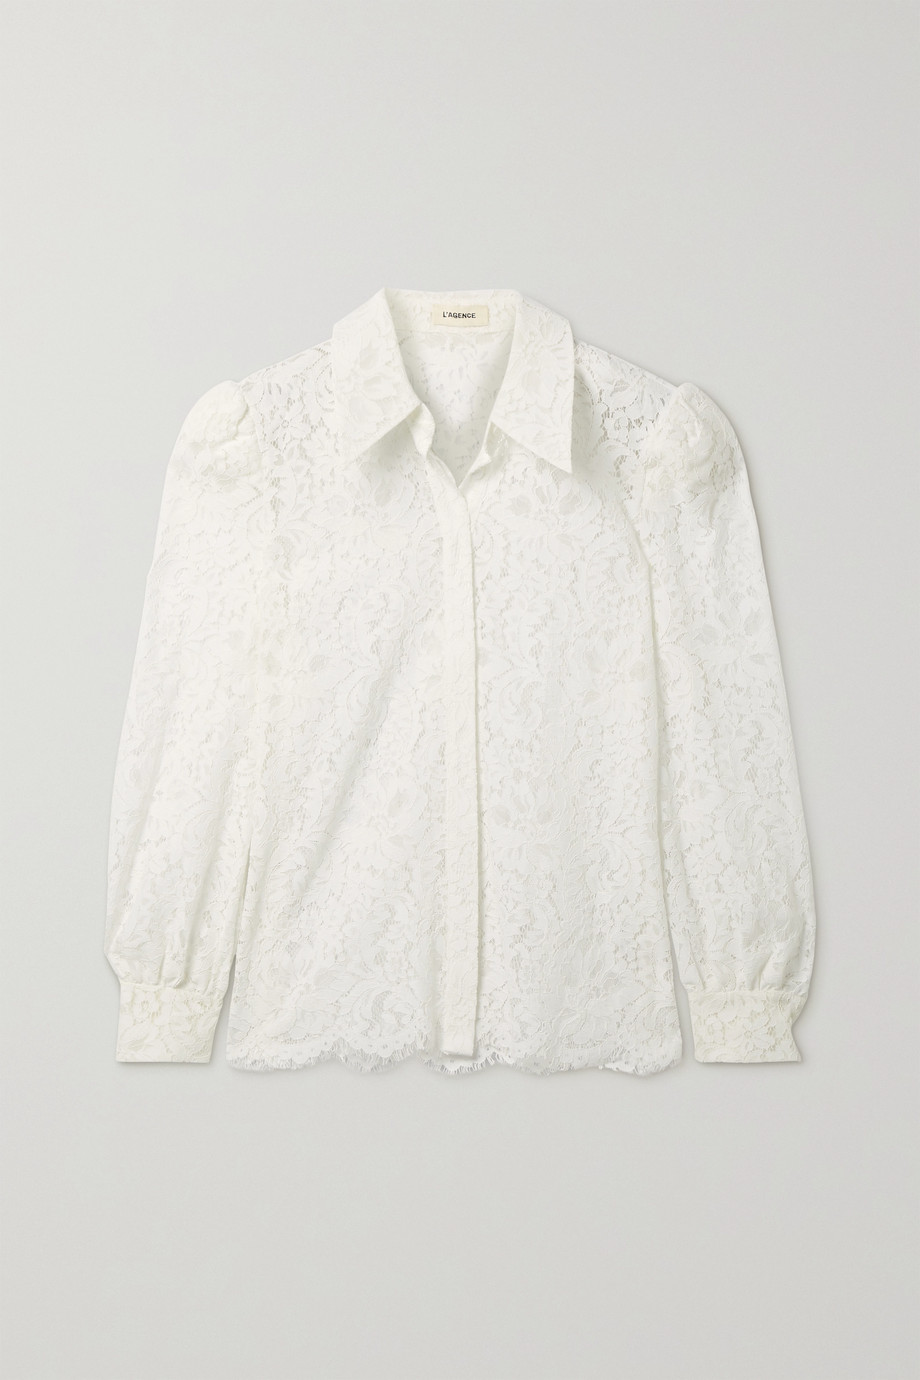 L'Agence Jenica corded lace blouse